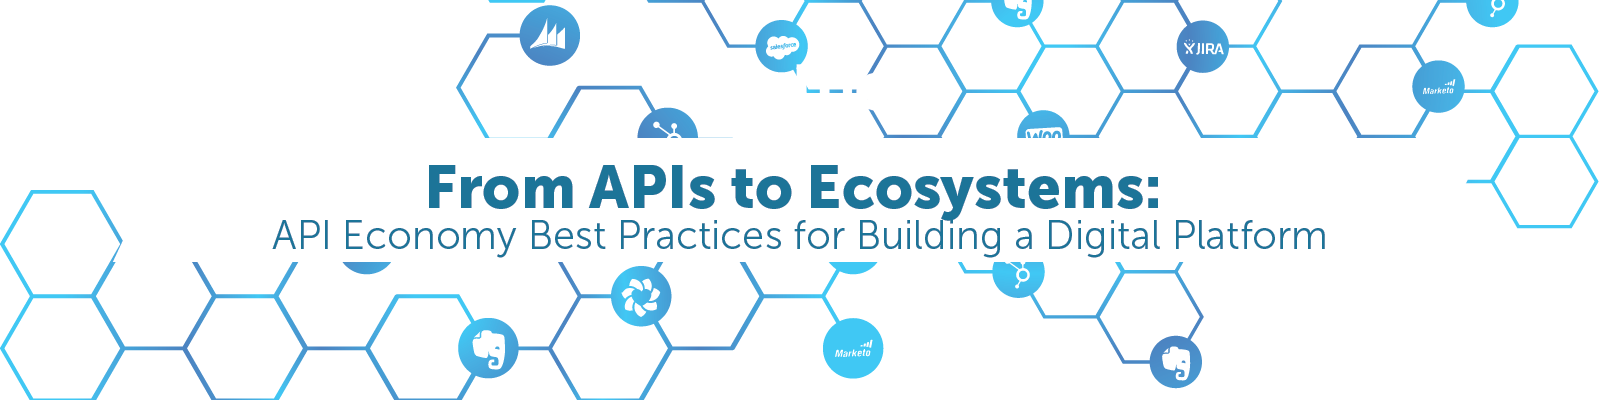 API Economy best practices for building a digital platform